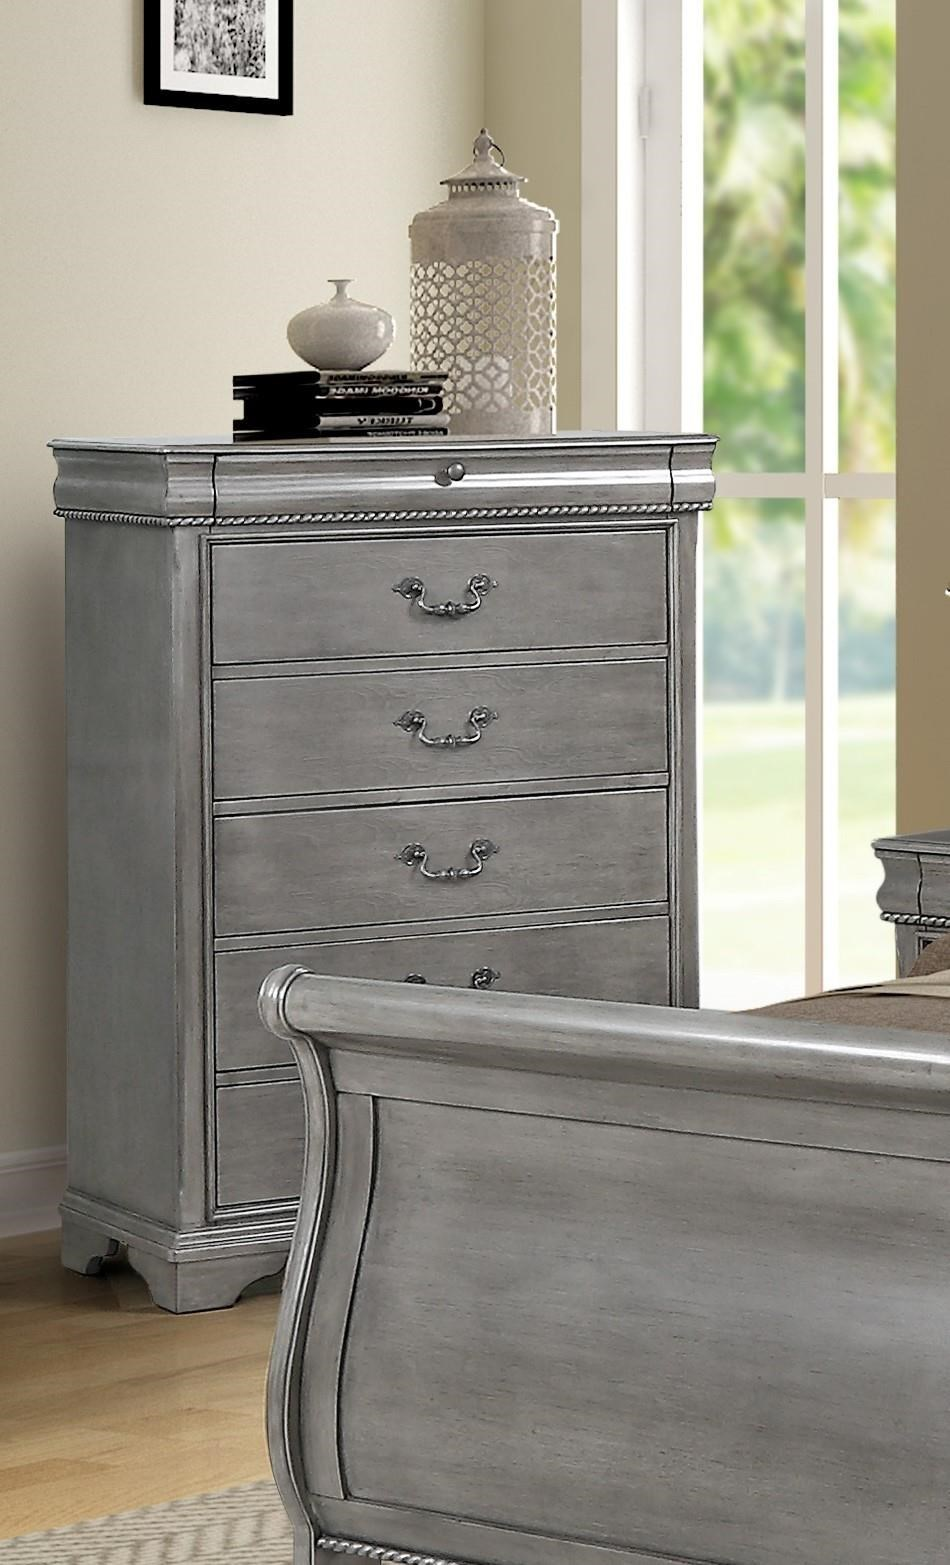 6 Drawer Chest Of Drawers C4116a 6 Drawer Chest By Lifestyle At Furniture Fair North Carolina